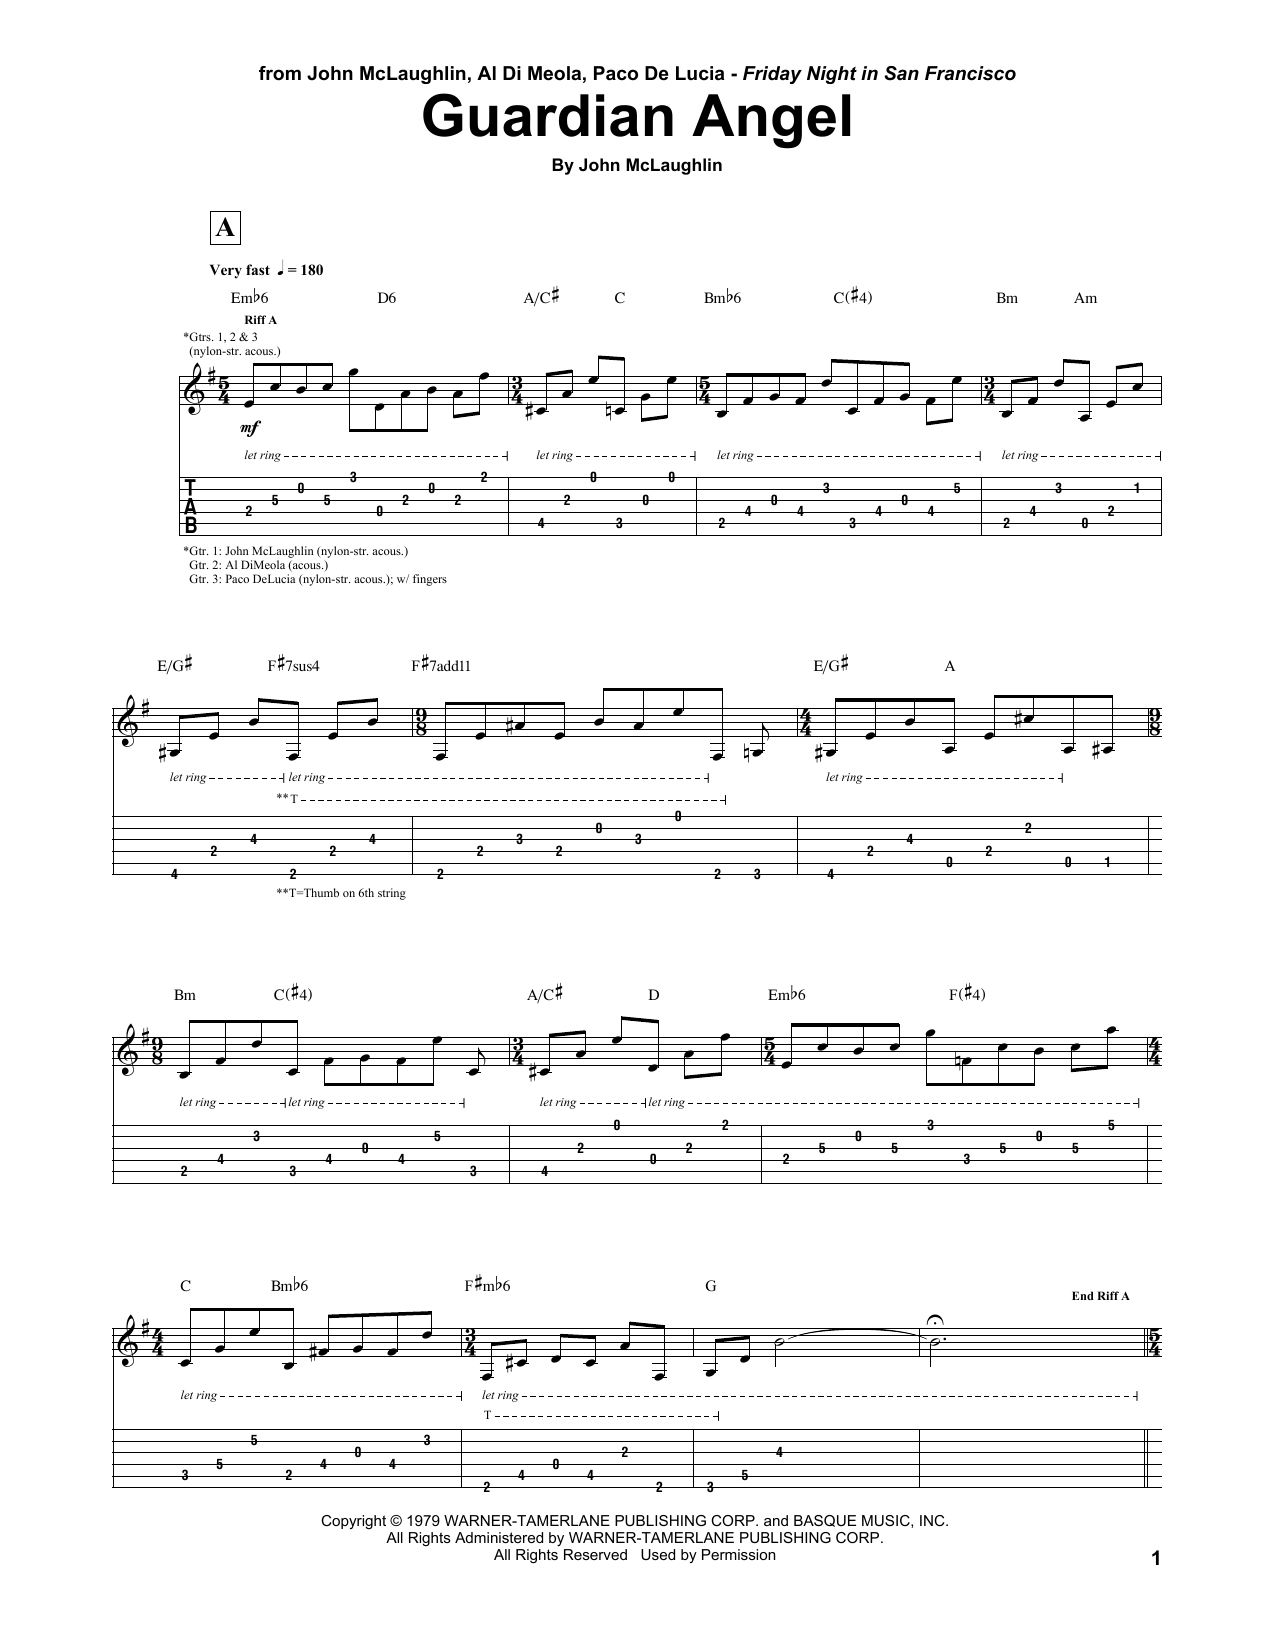 I Will Follow You Into The Dark Chords John Mclaughlin Al Di Meola Paco De Lucia Guardian Angel Sheet Music Notes Chords Download Printable Guitar Tab Sku 162208